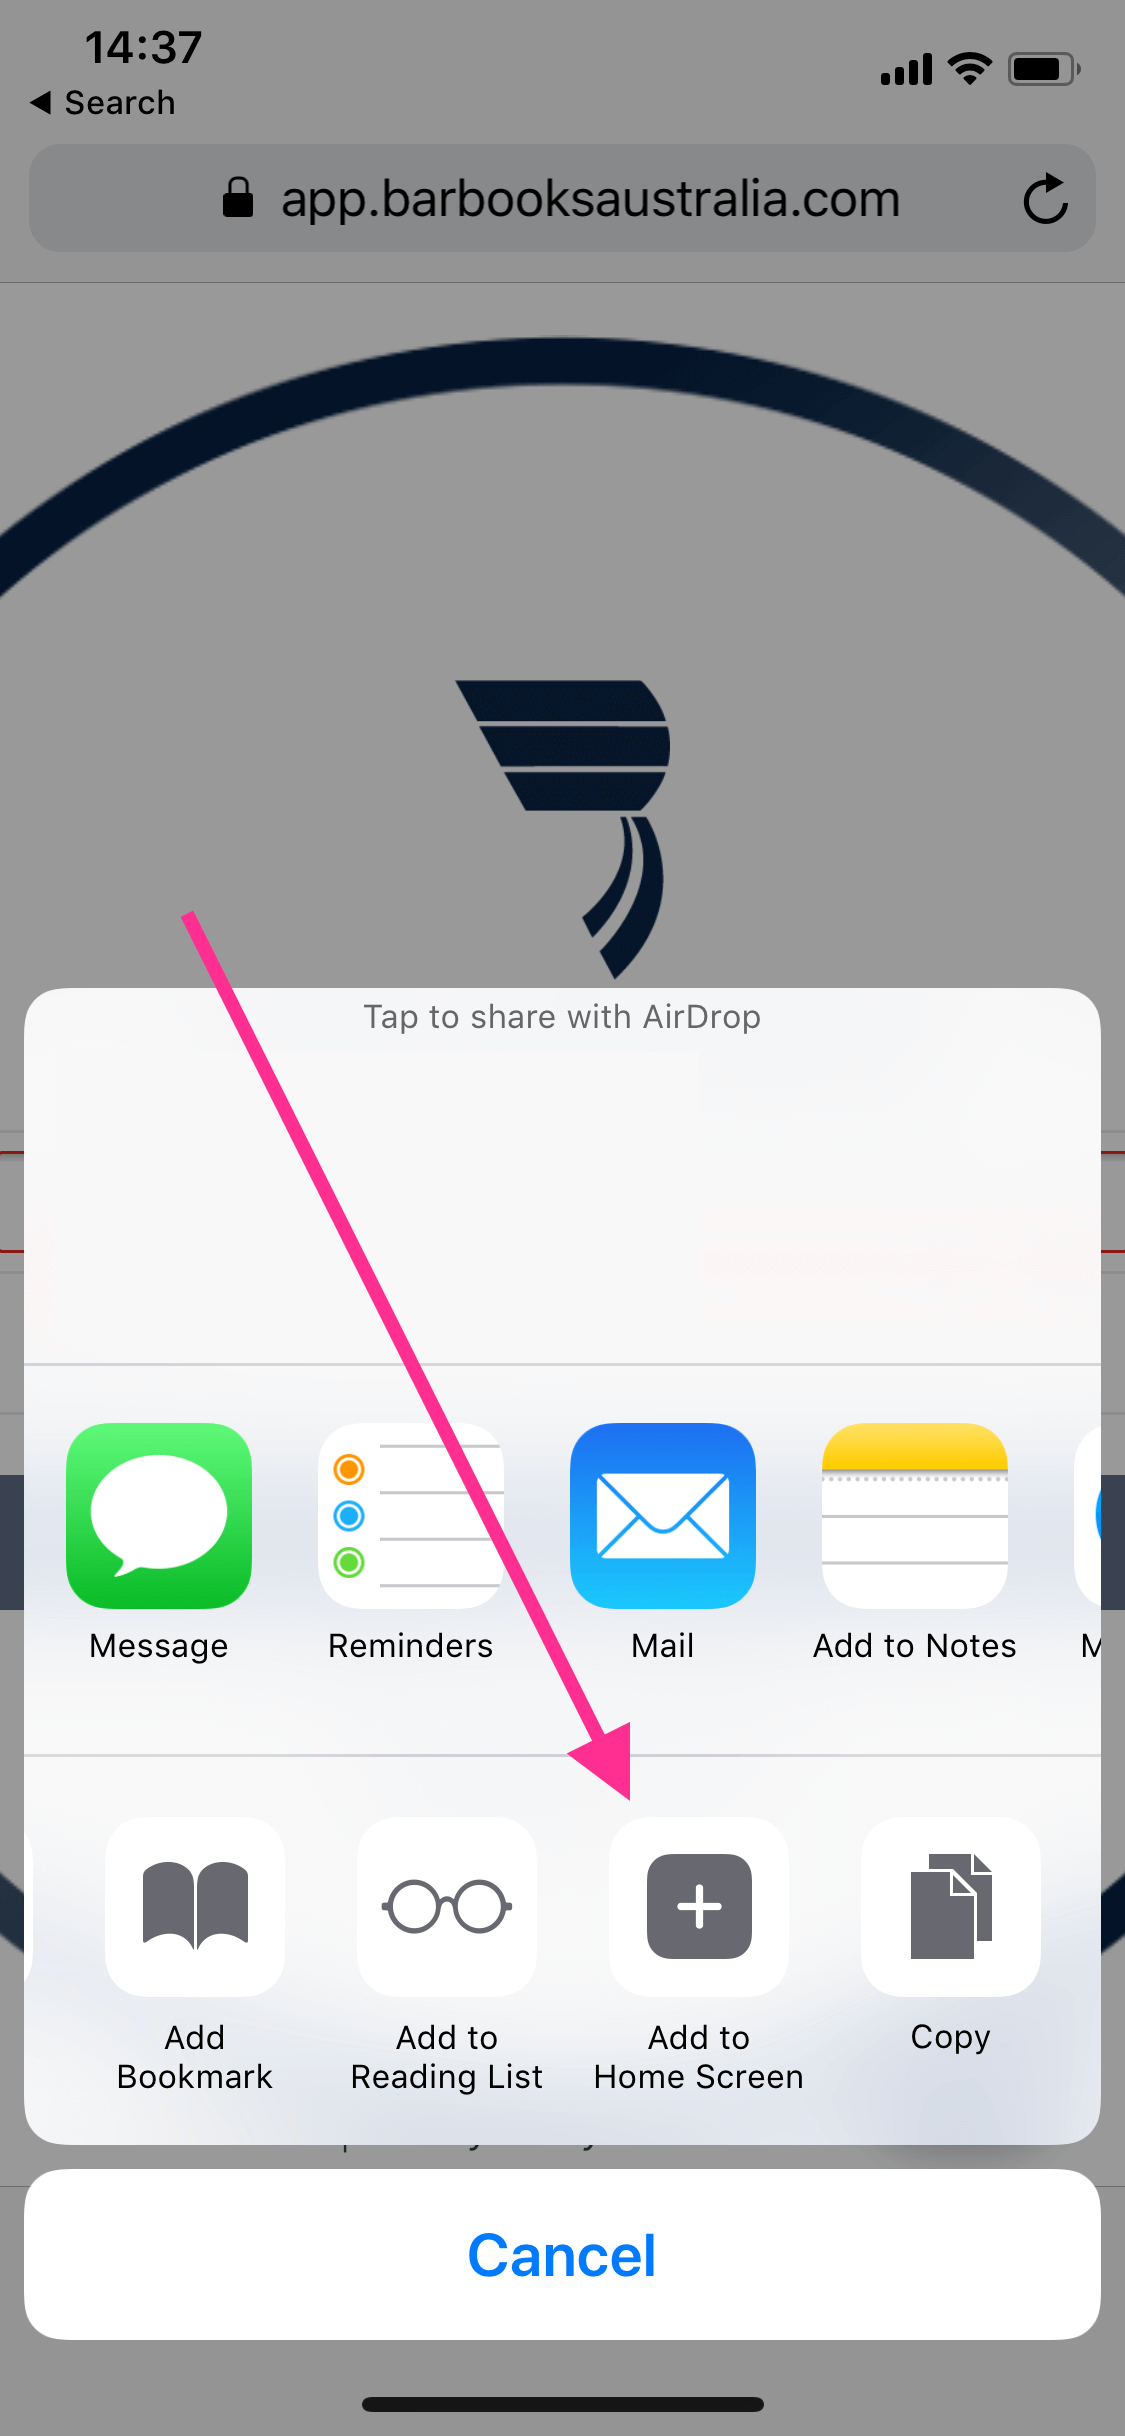 How to add BarBooks Webapp shortcut on your iPhone - BarBooks